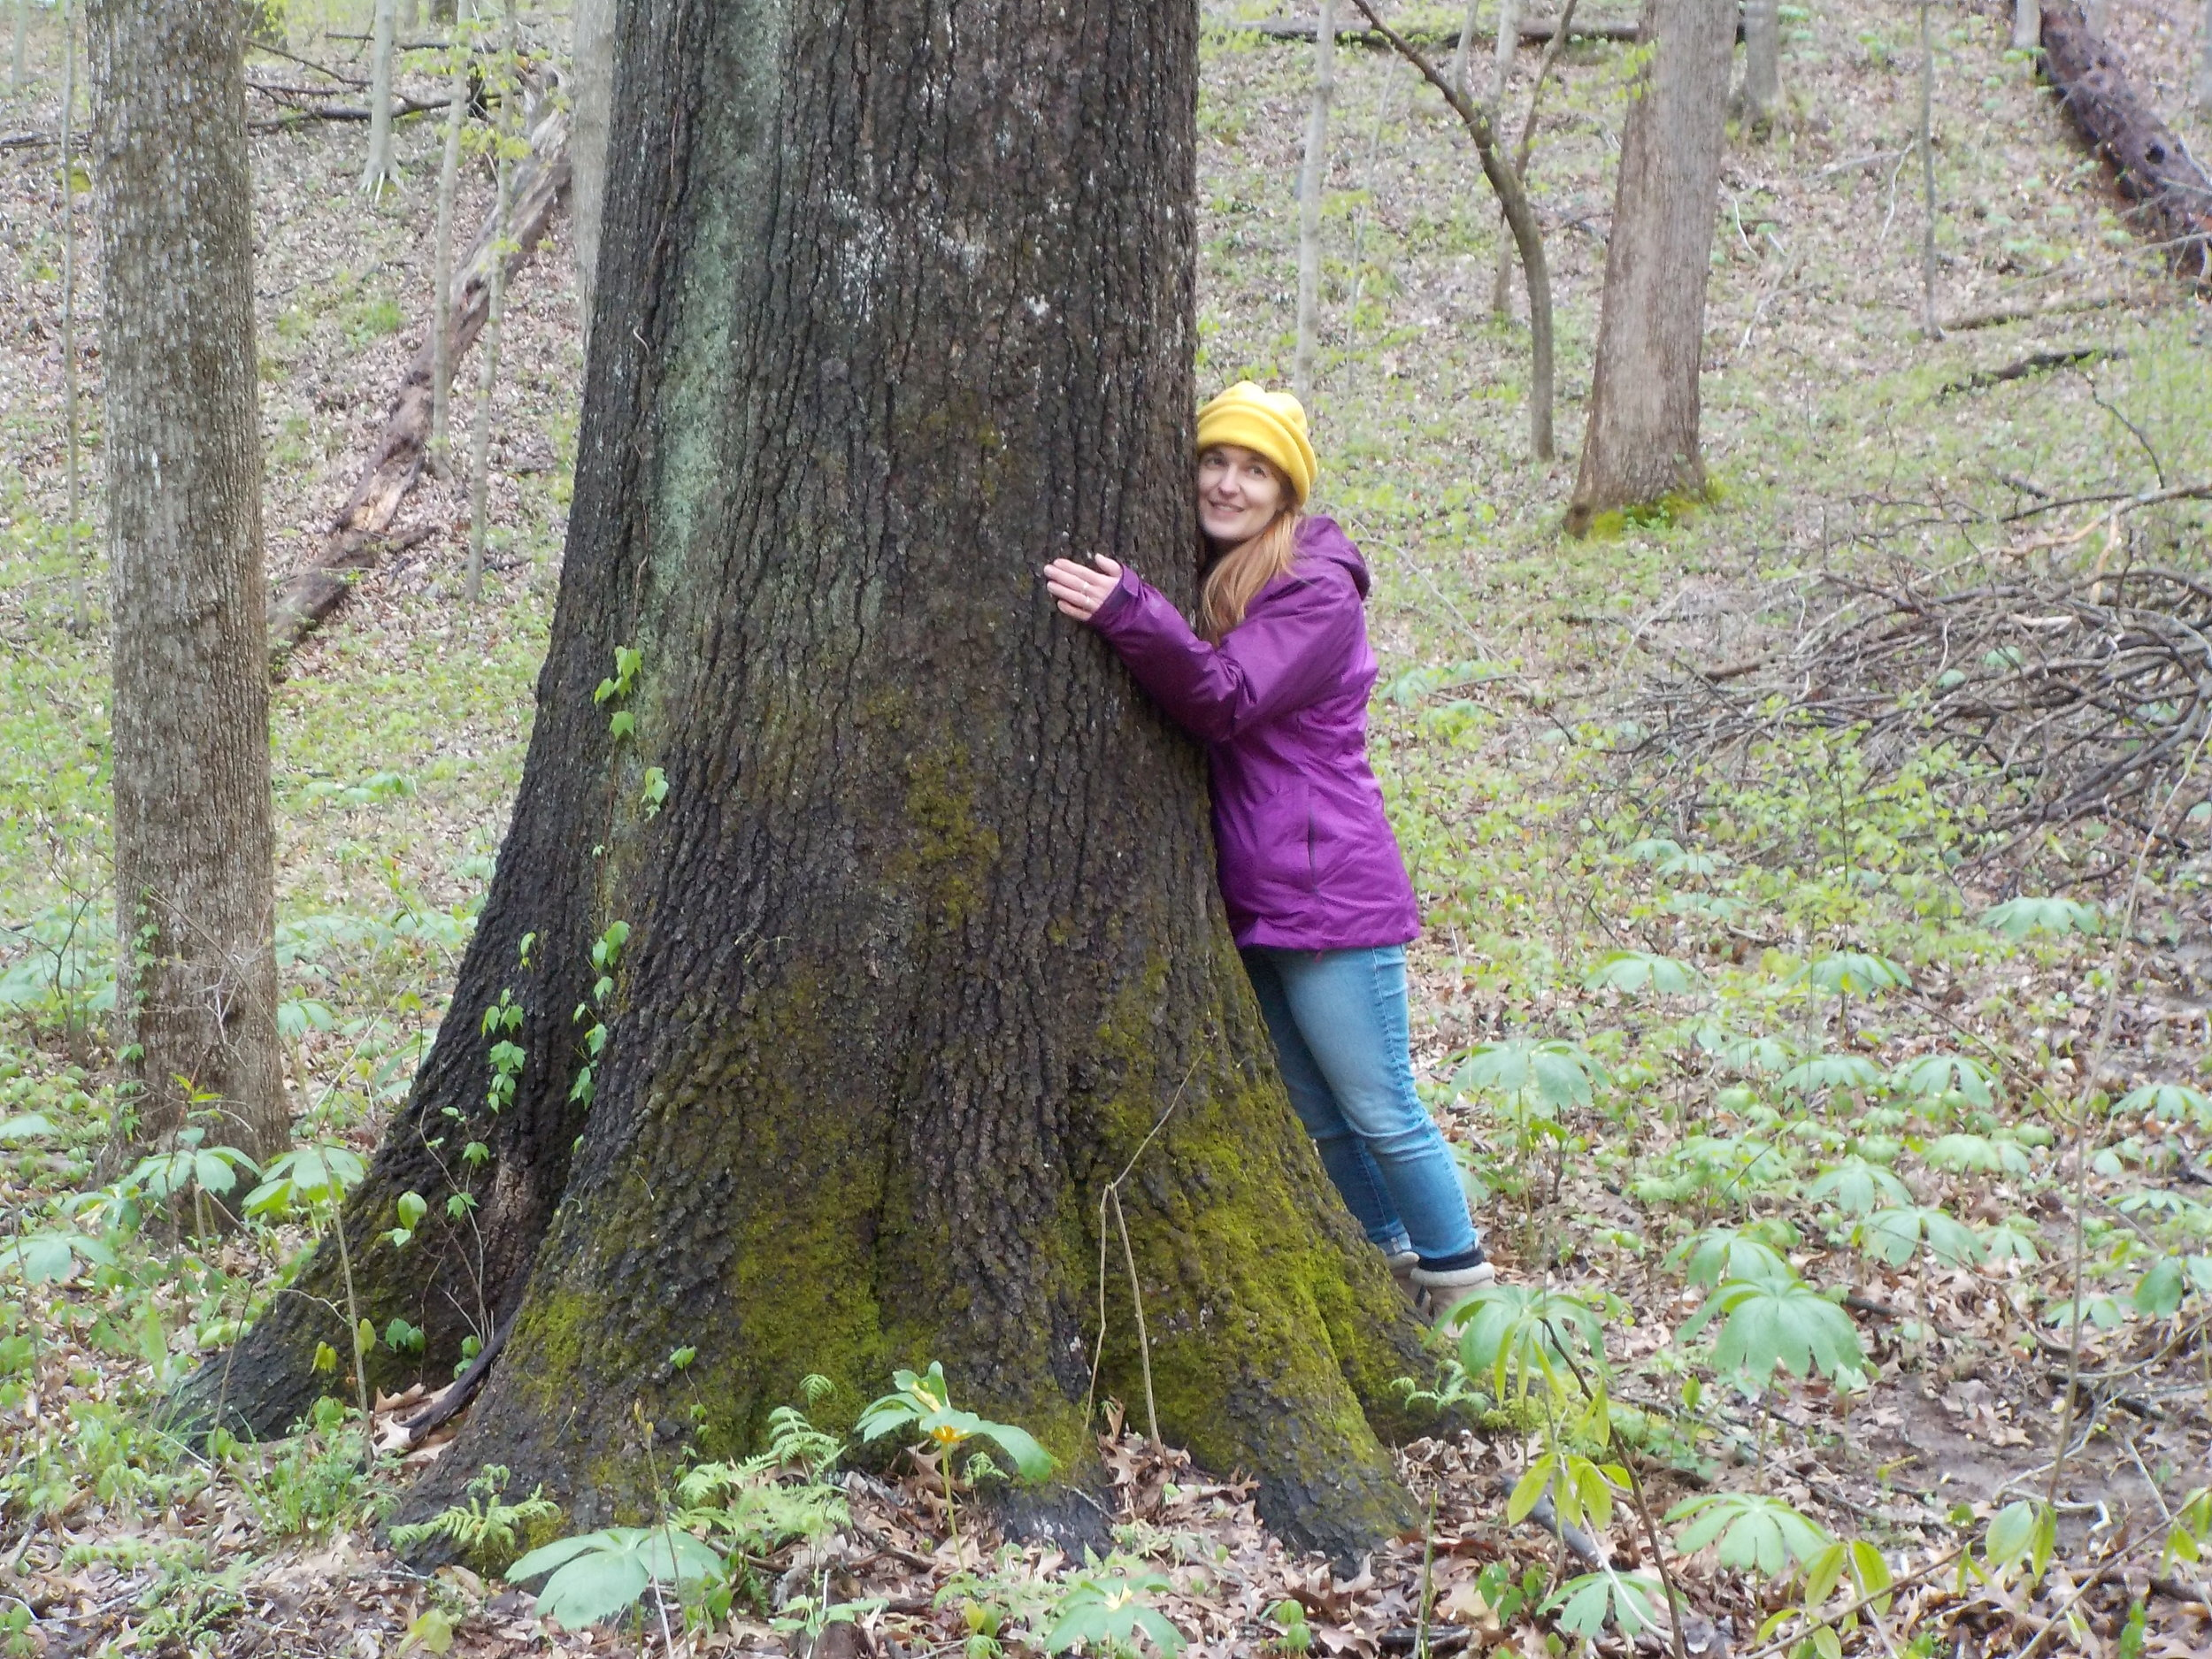 Activists oppose Shawnee National Forest plan that calls for commercial timber sales of oaks, hickories - September 29th 2019- Molly Parker of the Southern reviews the historical and present day fight to save the Shawnee Forest.